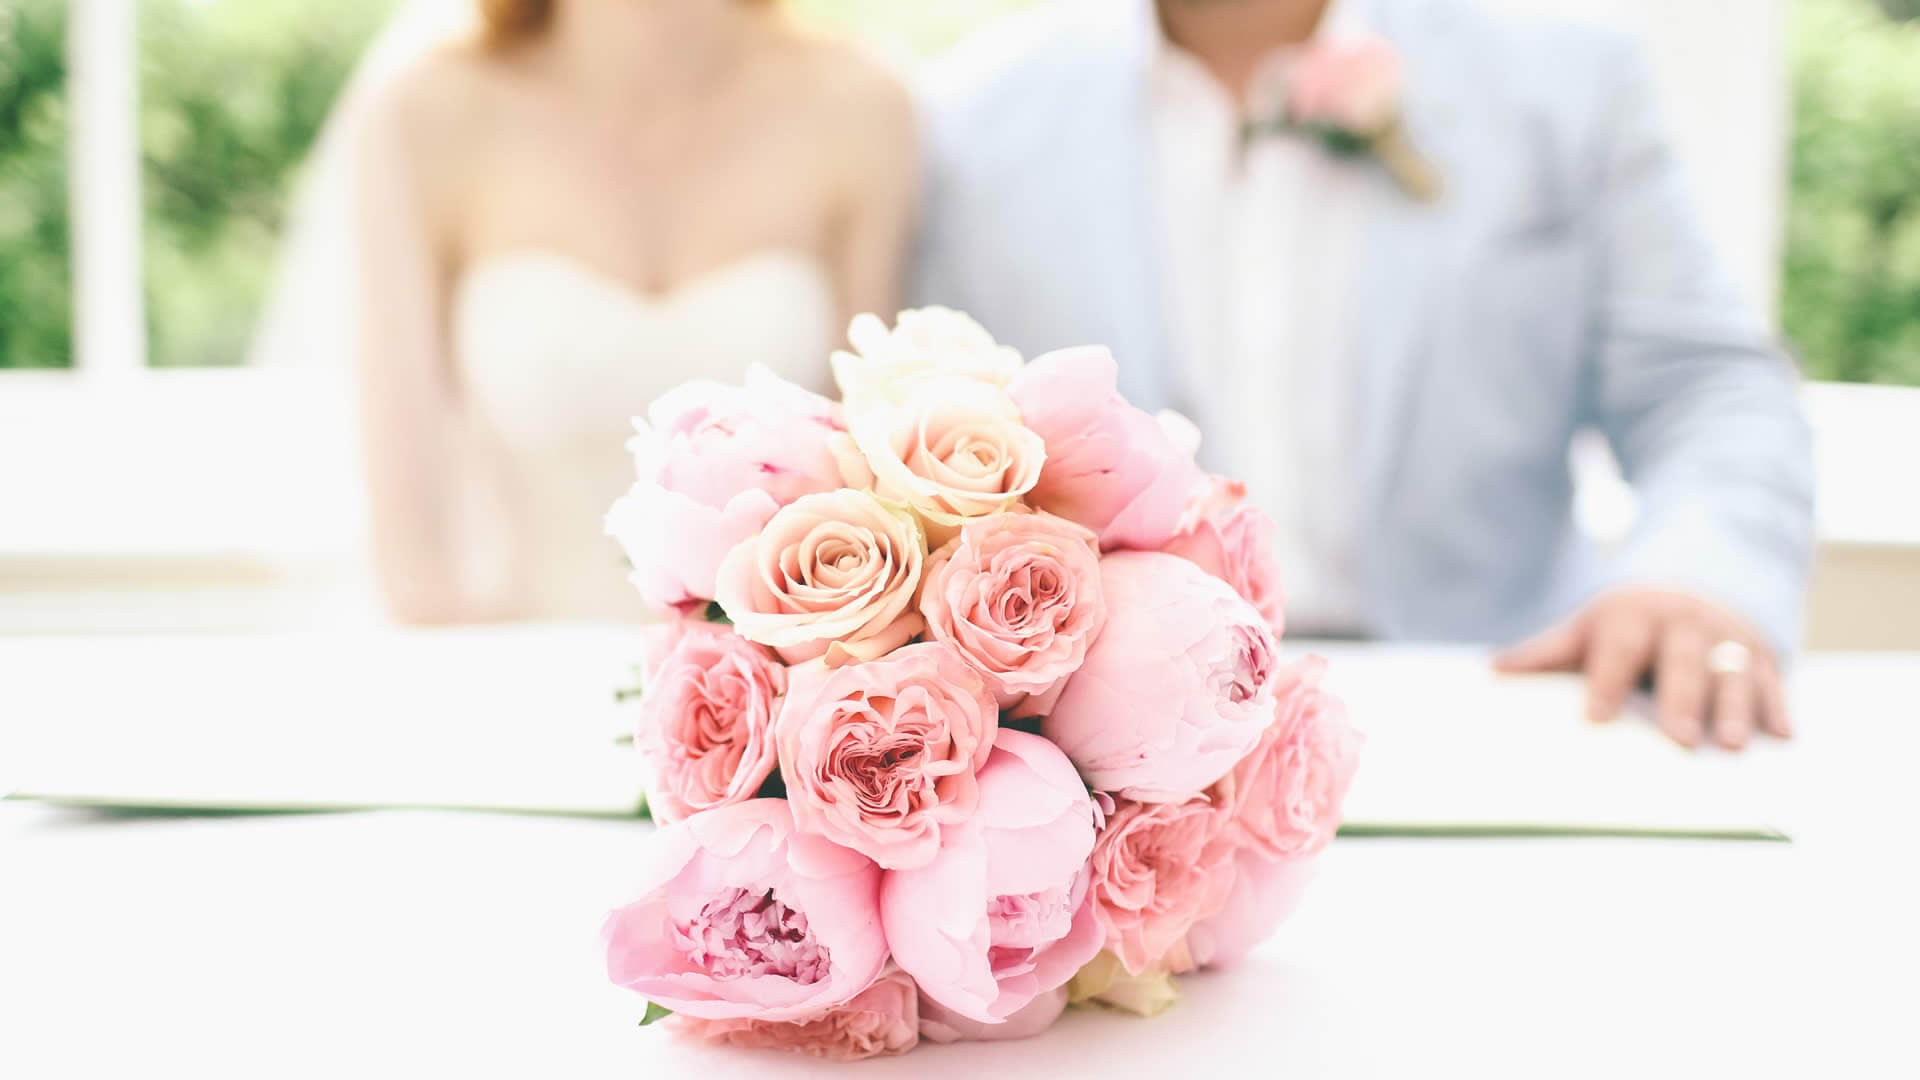 Jenna & Ollie - Flourish Flowers, Weddings